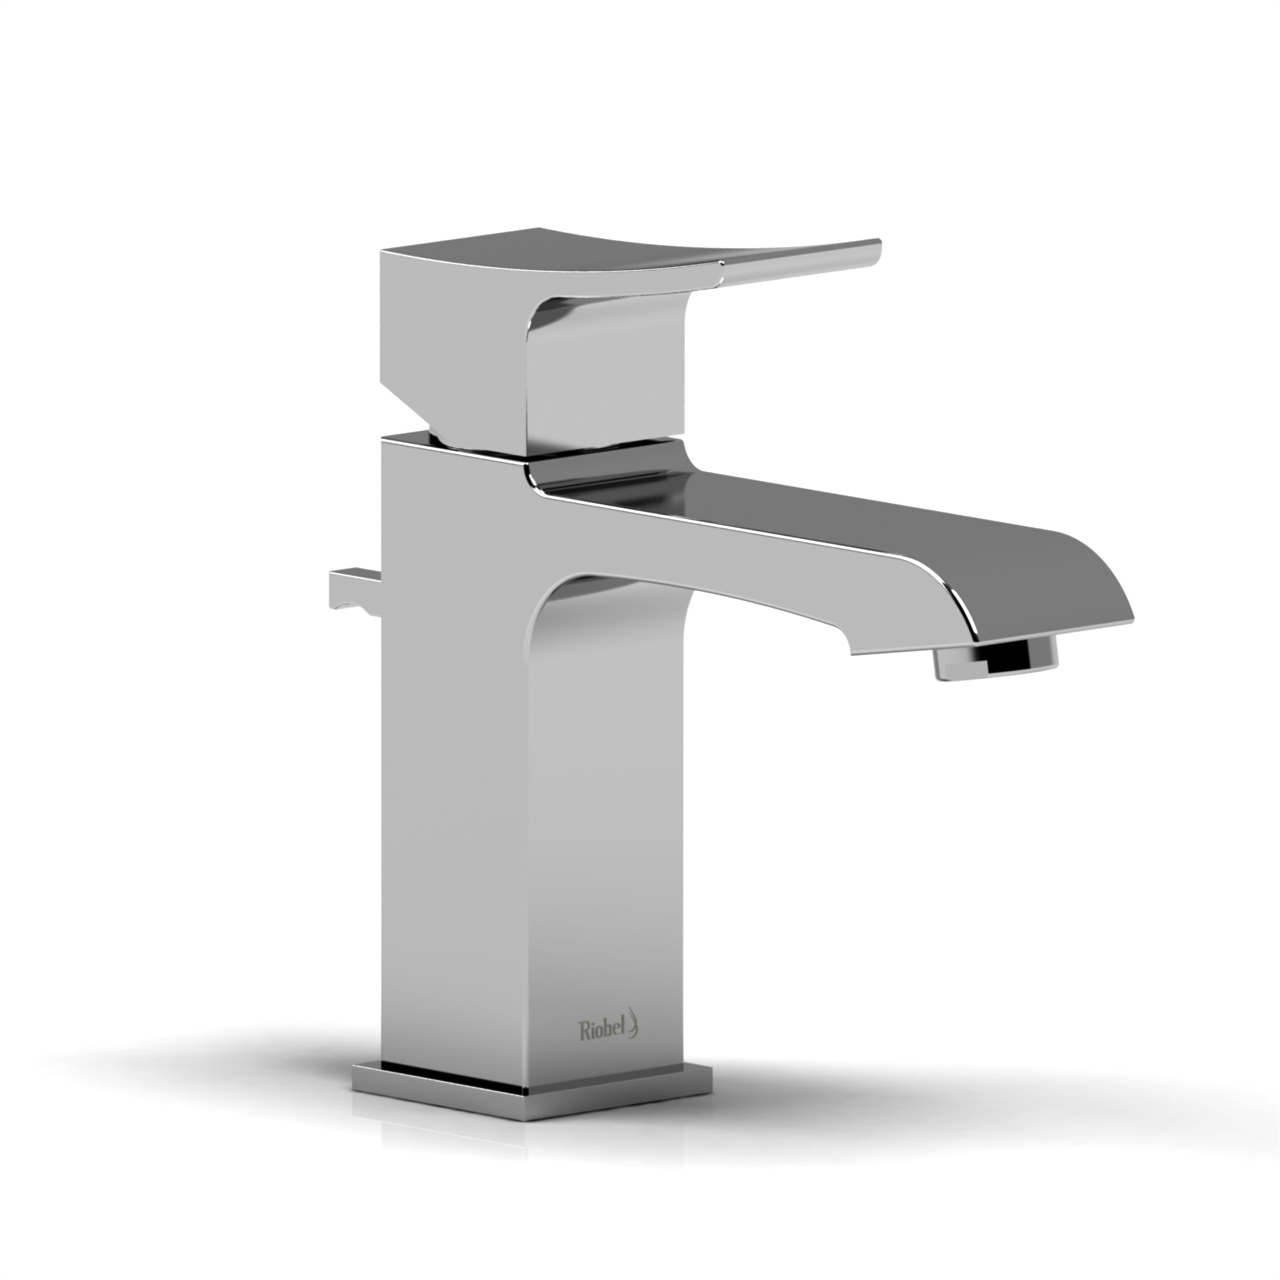 Riobel Zendo Single Hole Faucet Zs01 Bathroom Faucet For The throughout sizing 1280 X 1280